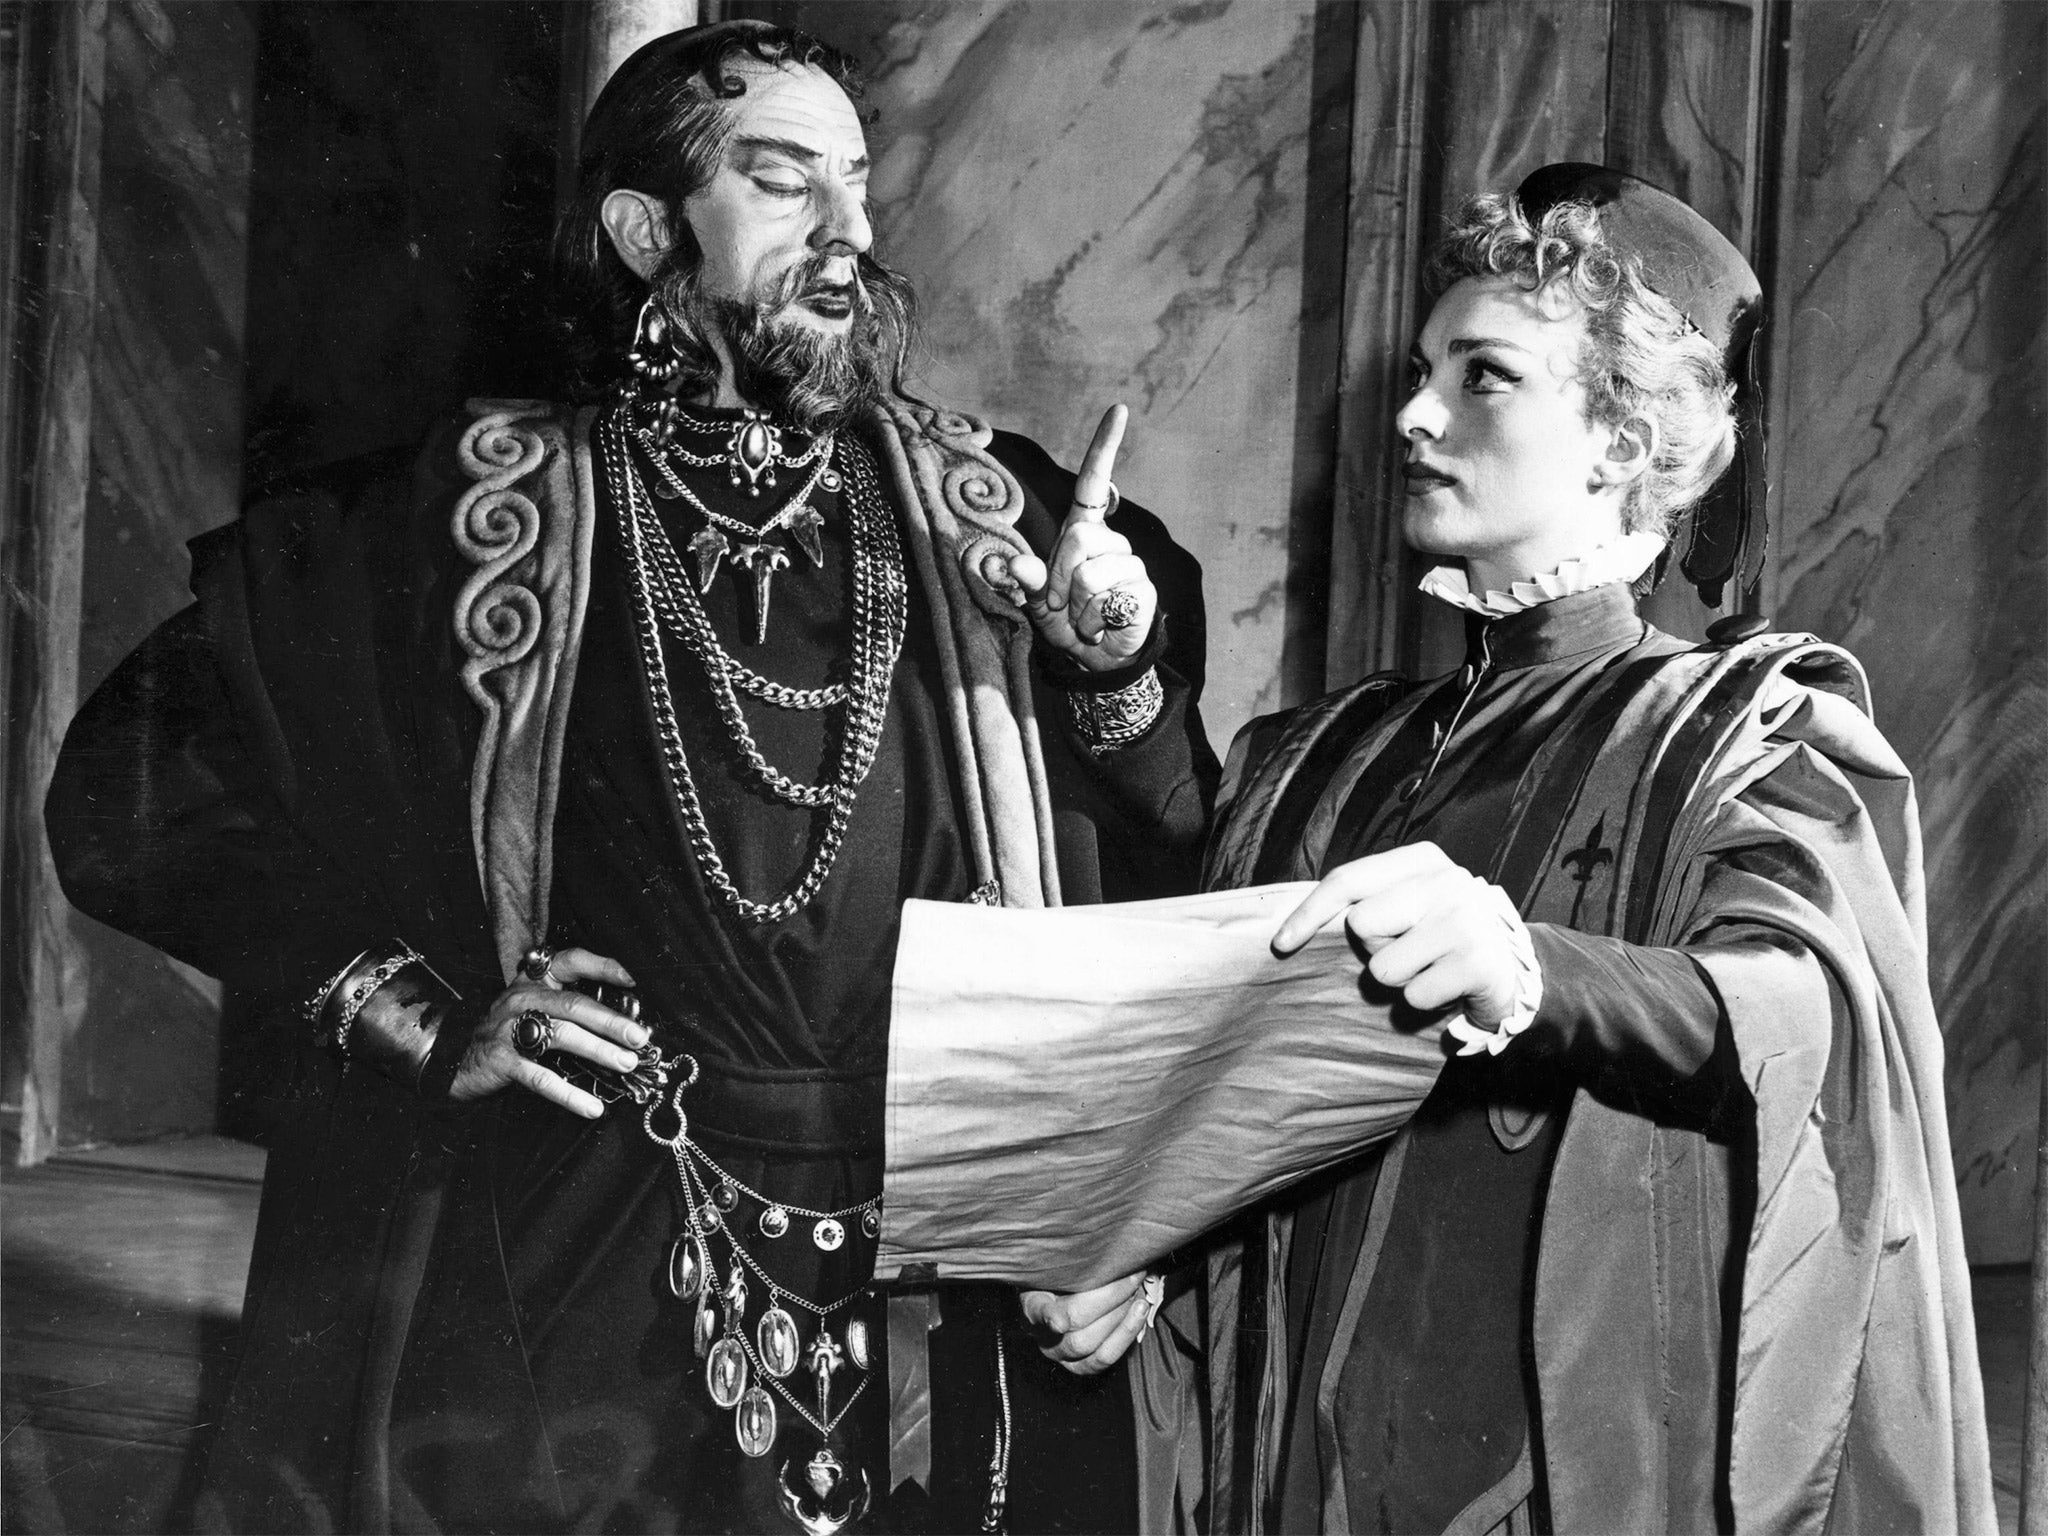 an analysis of the characters of salerio and salanio in the play the merchant of venice Salanio, salarino, gratiano, salerio,  1 6 merchant of venice minor characters  and the wickedness of greed, does the play set forth merchant of venice 29.